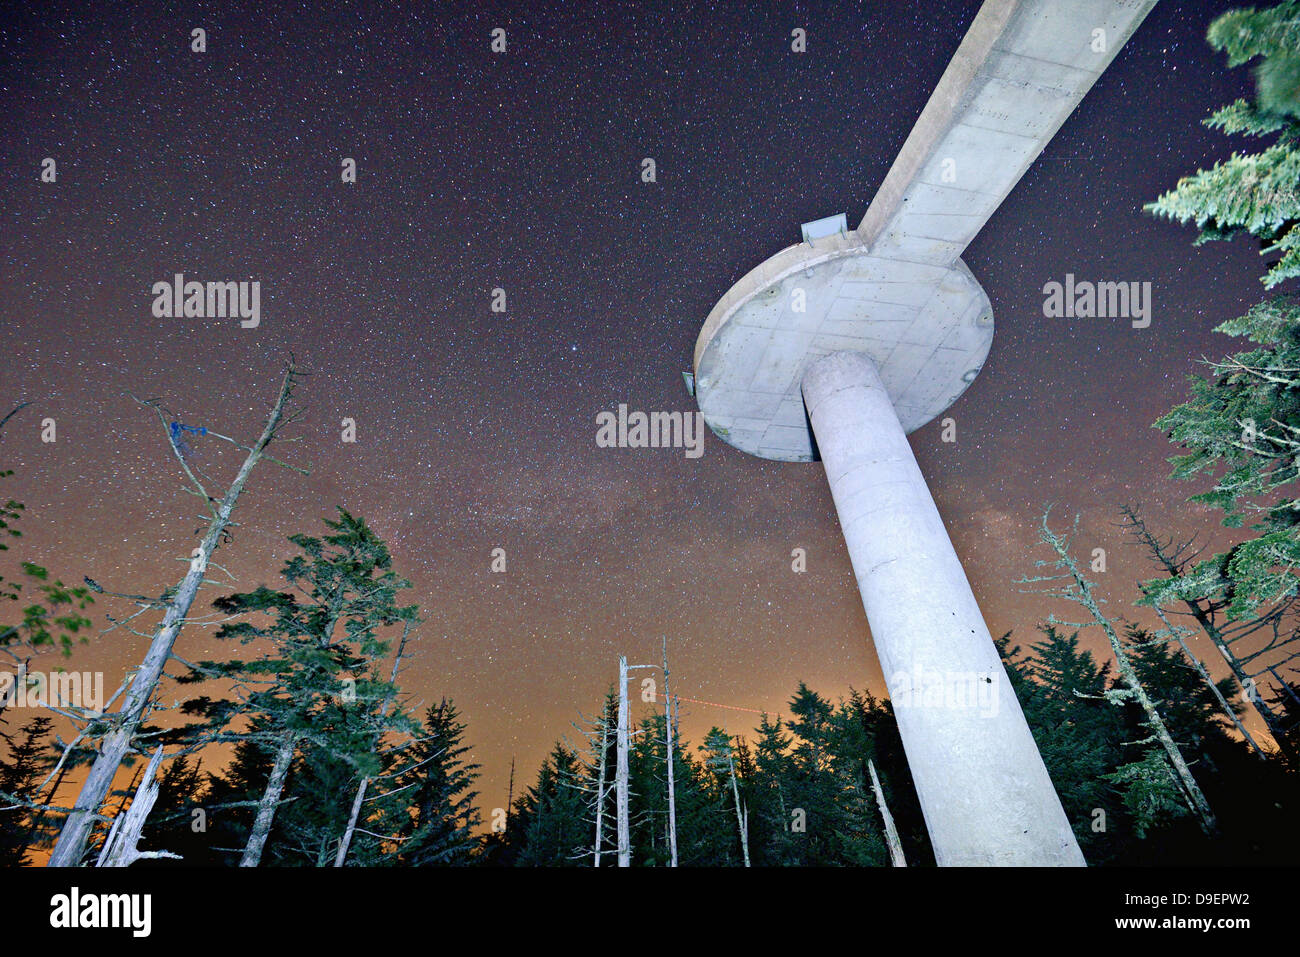 Clingman's Dome Observation point in the Great Smoky Mountains near Gatlinburg, Tennessee. - Stock Image